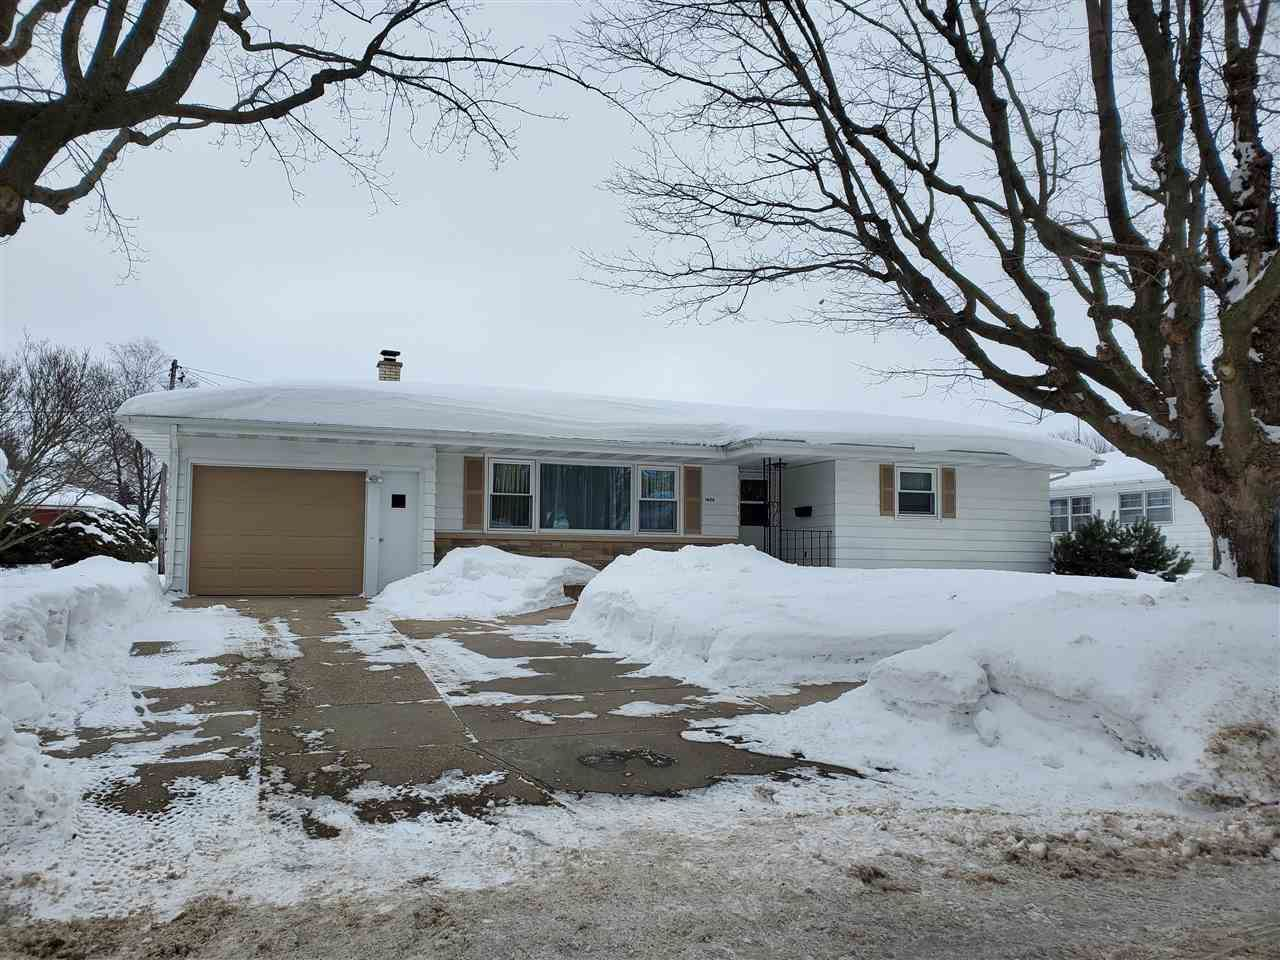 1606 28th Ave, Monroe, WI 53566 - #: 1902903